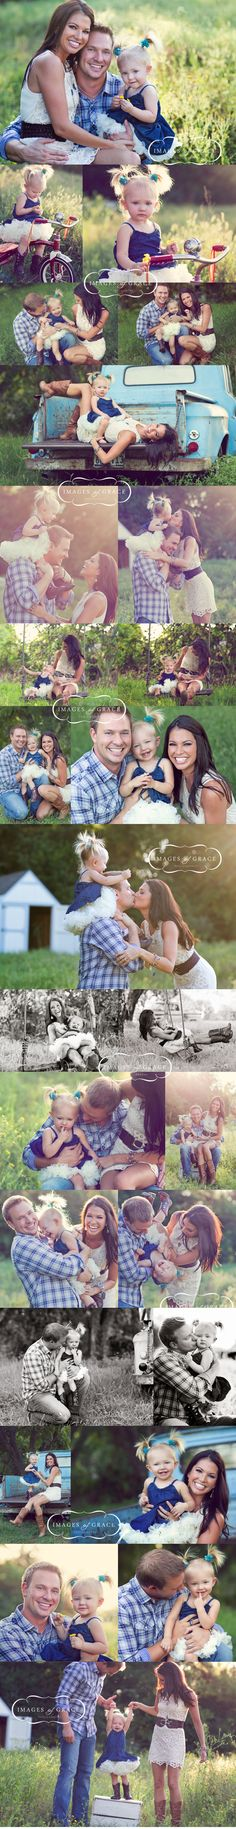 Adorable family photos